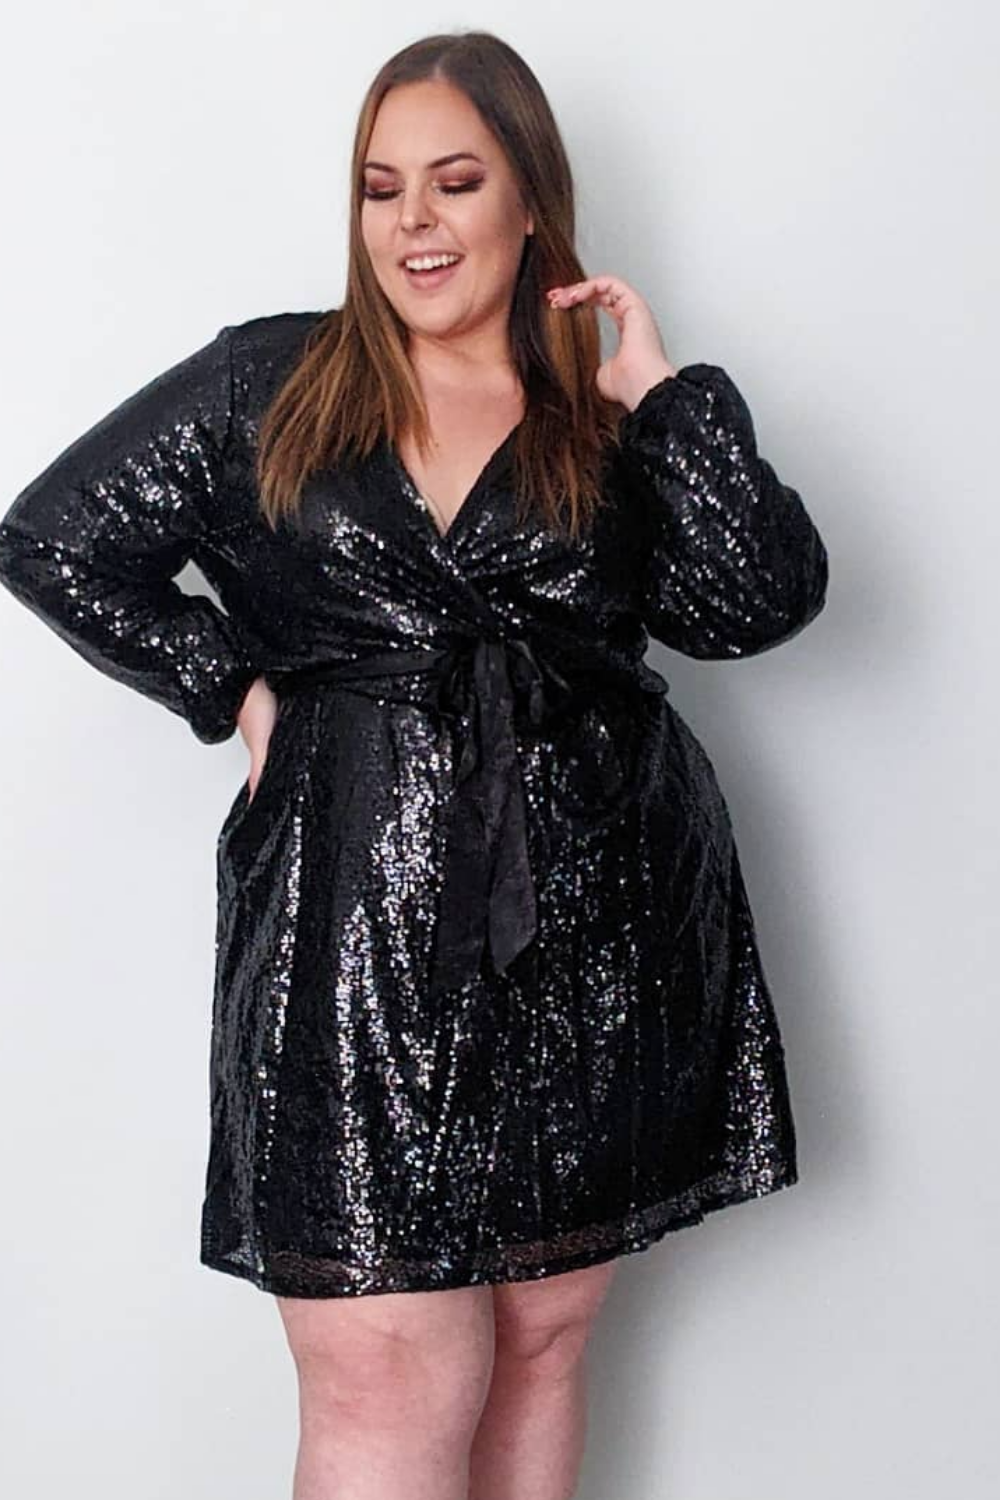 CMTC alumni Kari Kemp! Kari is also the owner of Eh Plus Apparek! Time to sparkle the day away and get that dress from Eh Plus Apparel! 😍🙌✨ Happy shopping! ✨🛍️✨ #theplusside #ehplus #plussizebrand #plussizestylewatch #plussizeboutique #canadianboutique #smallbusiness #smallbusinessowner #sweaterweather #curvyrevolution #curvygirl #fashiondiaries #fashioninspo #supportsmallbusiness #onlineboutique #itfitsmetoo #bodypositivity #bodyacceptance #bopo #beautybeyondsize #confidence